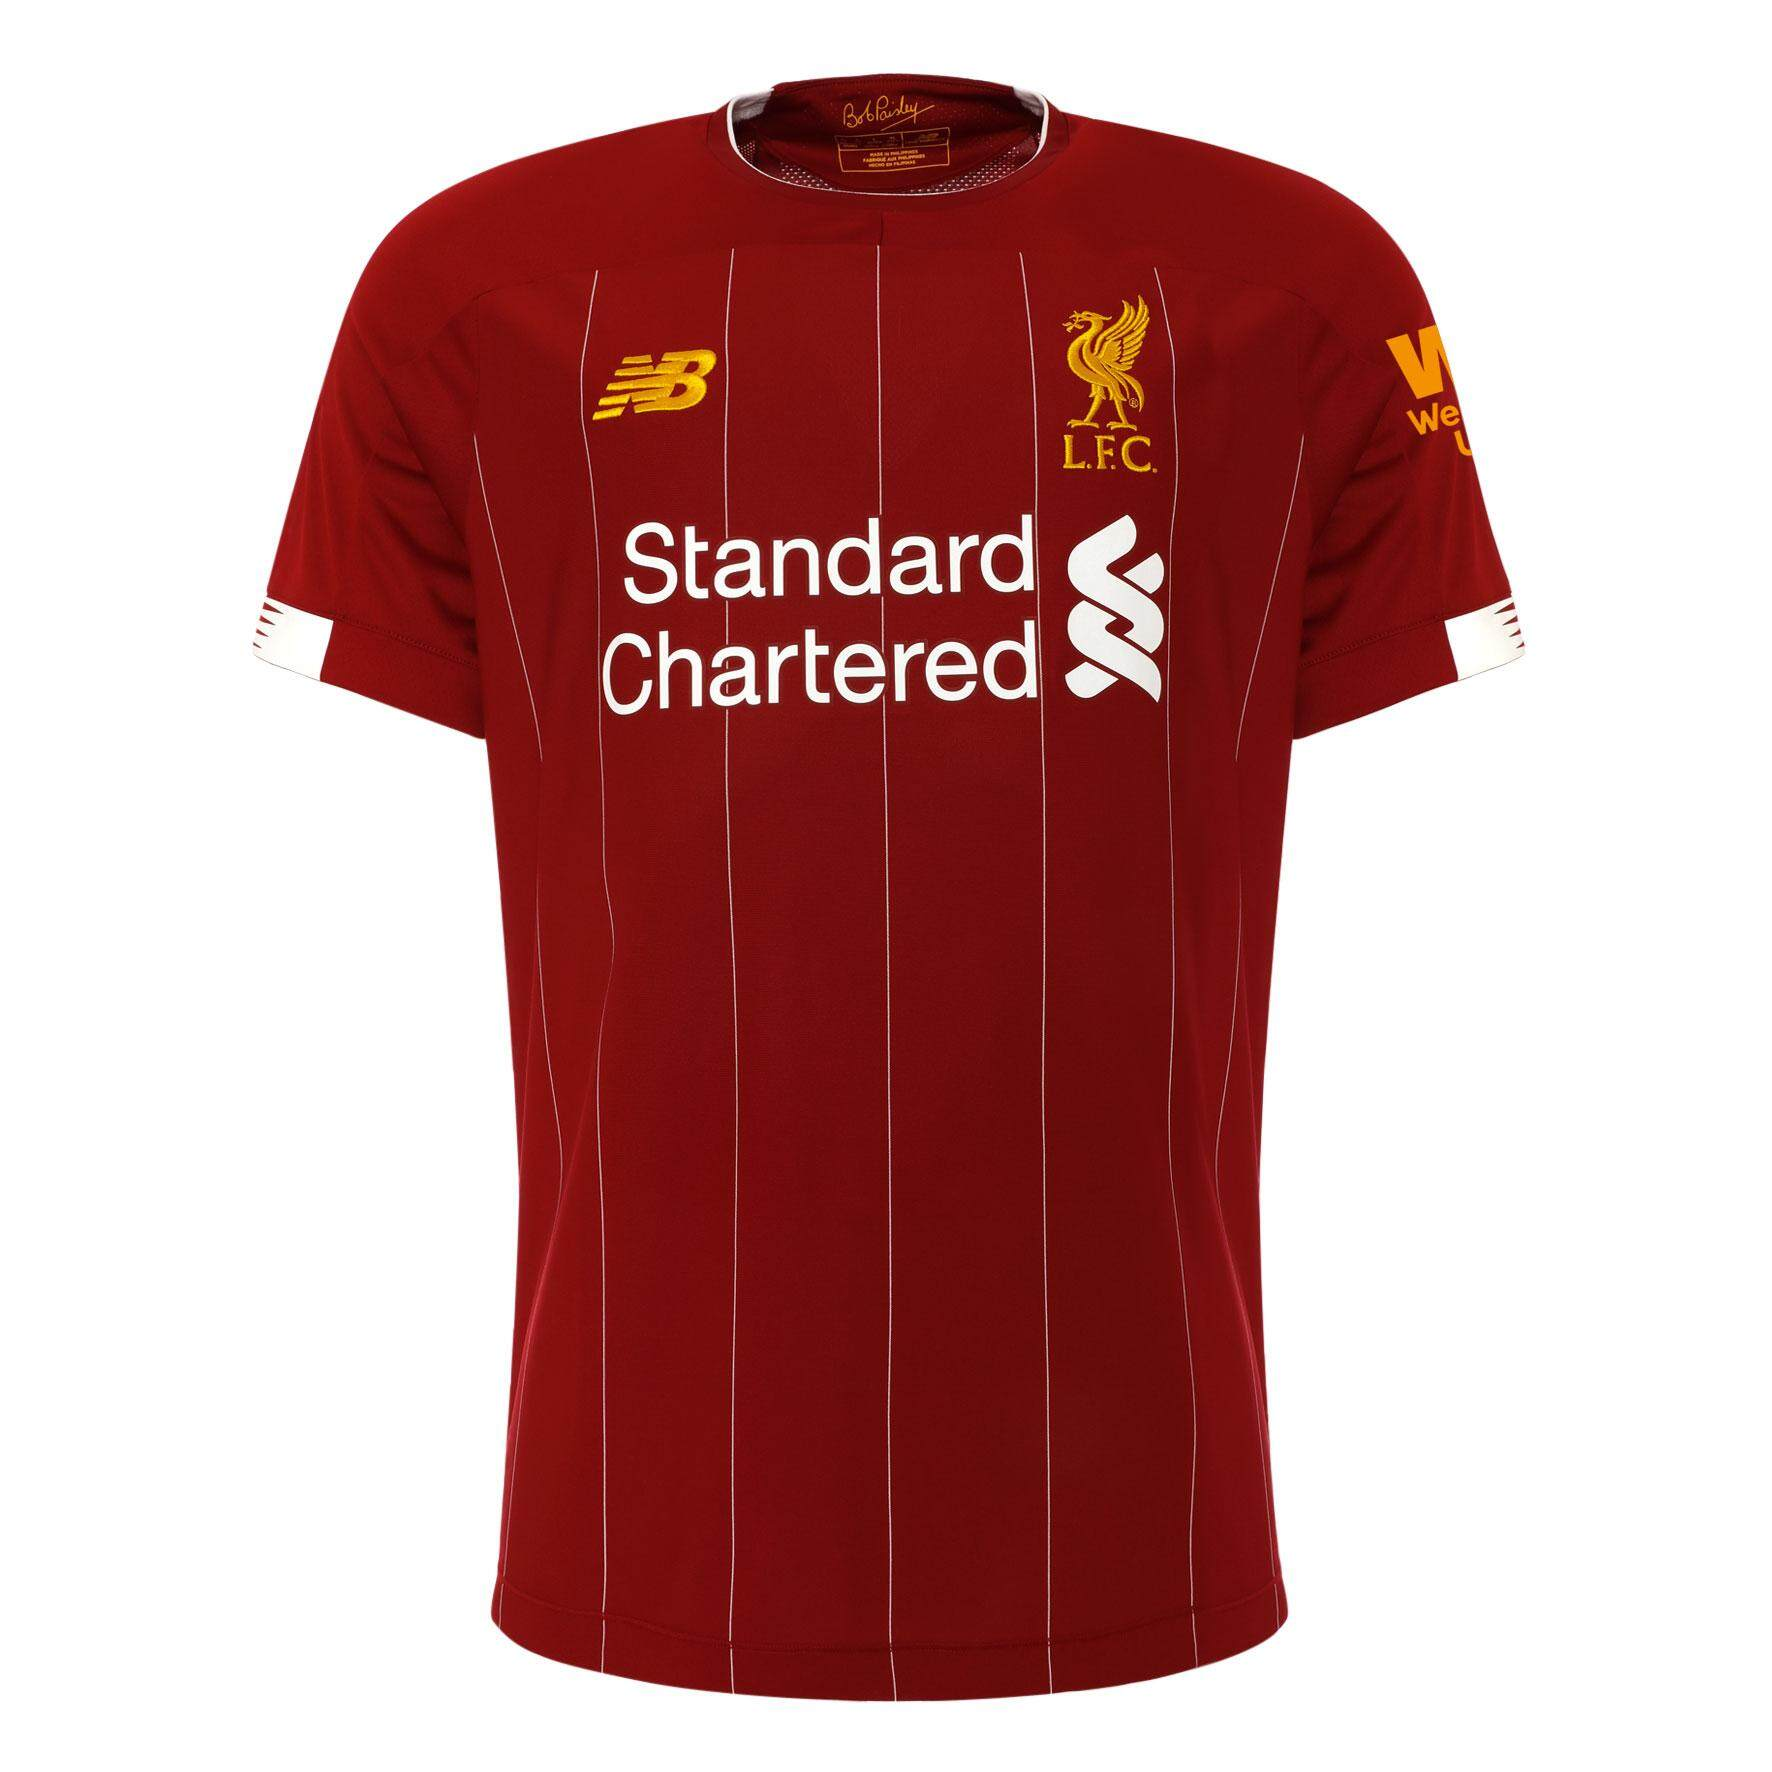 37809253a 2019 2020 LFC Home Football Jersey Men